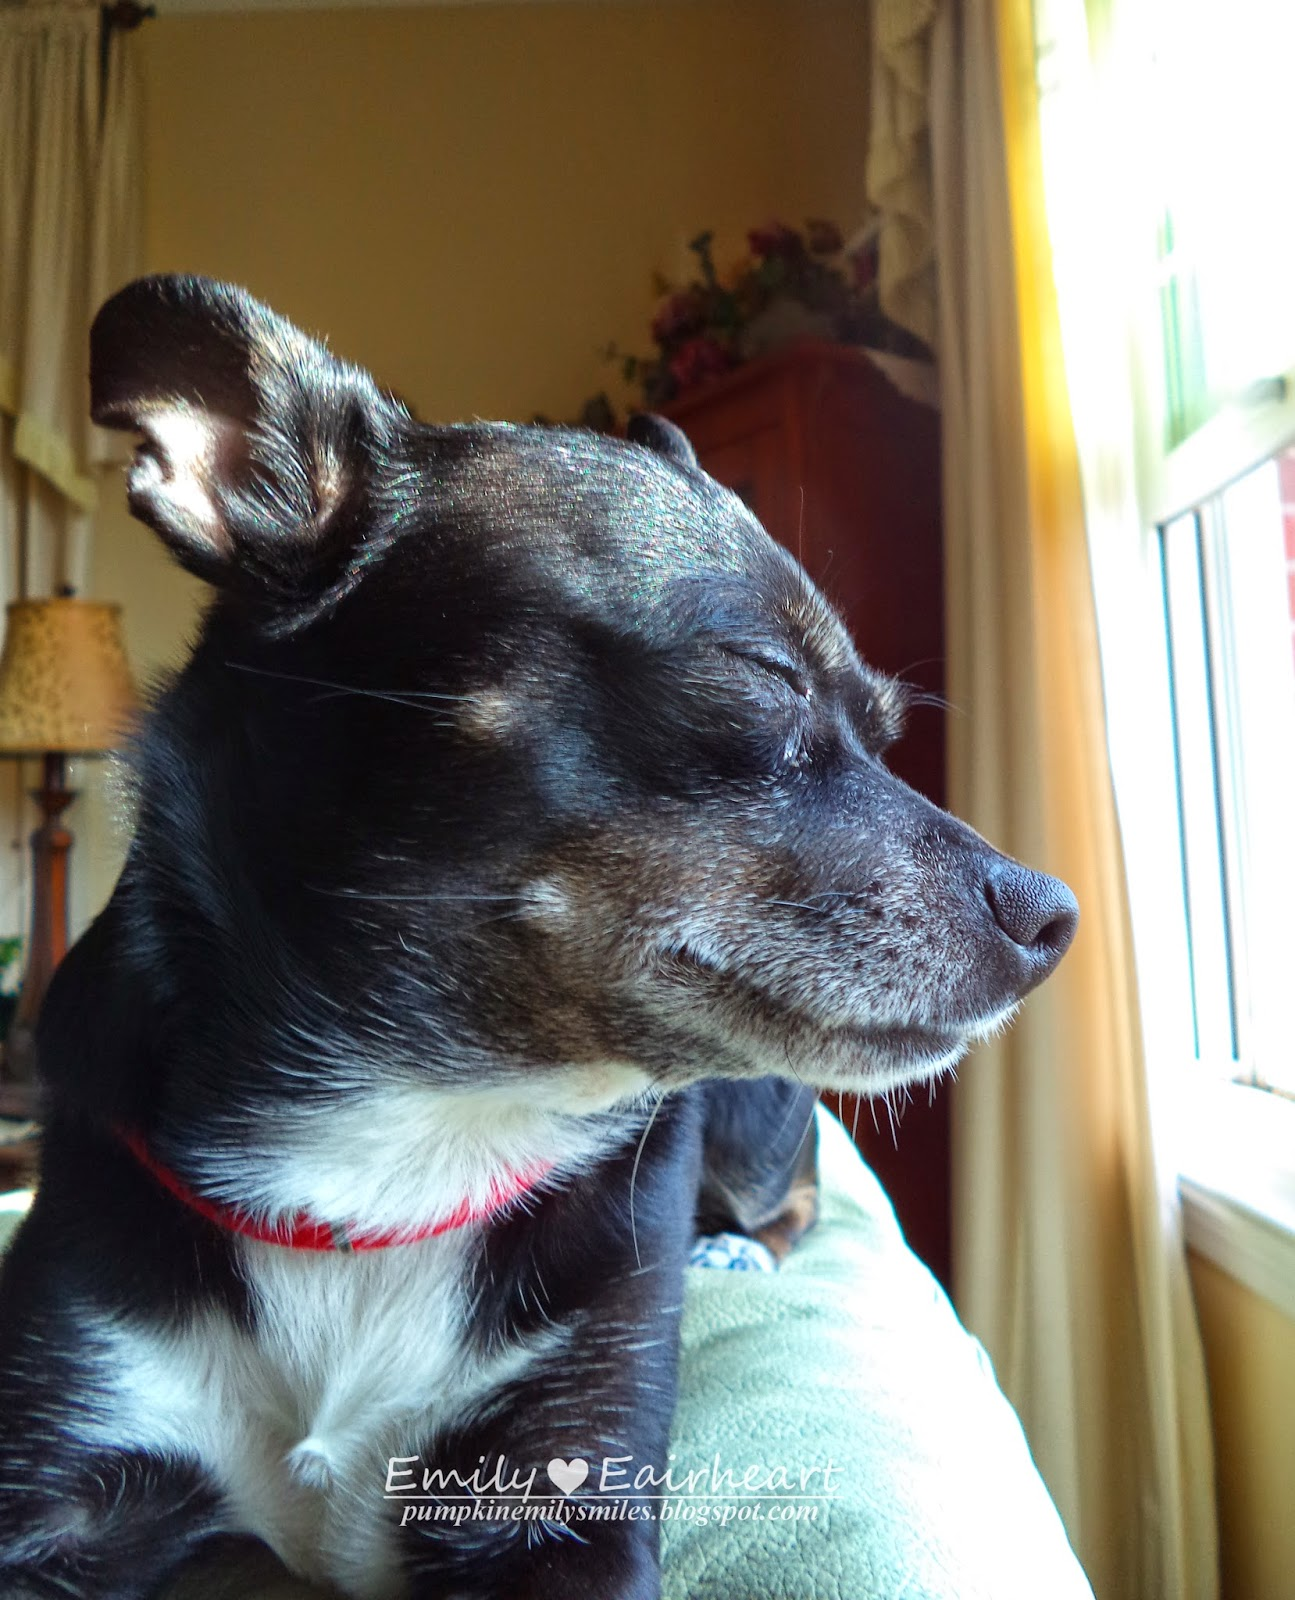 Minnie, Chihuahua, not looking at the camera and closing her eyes.